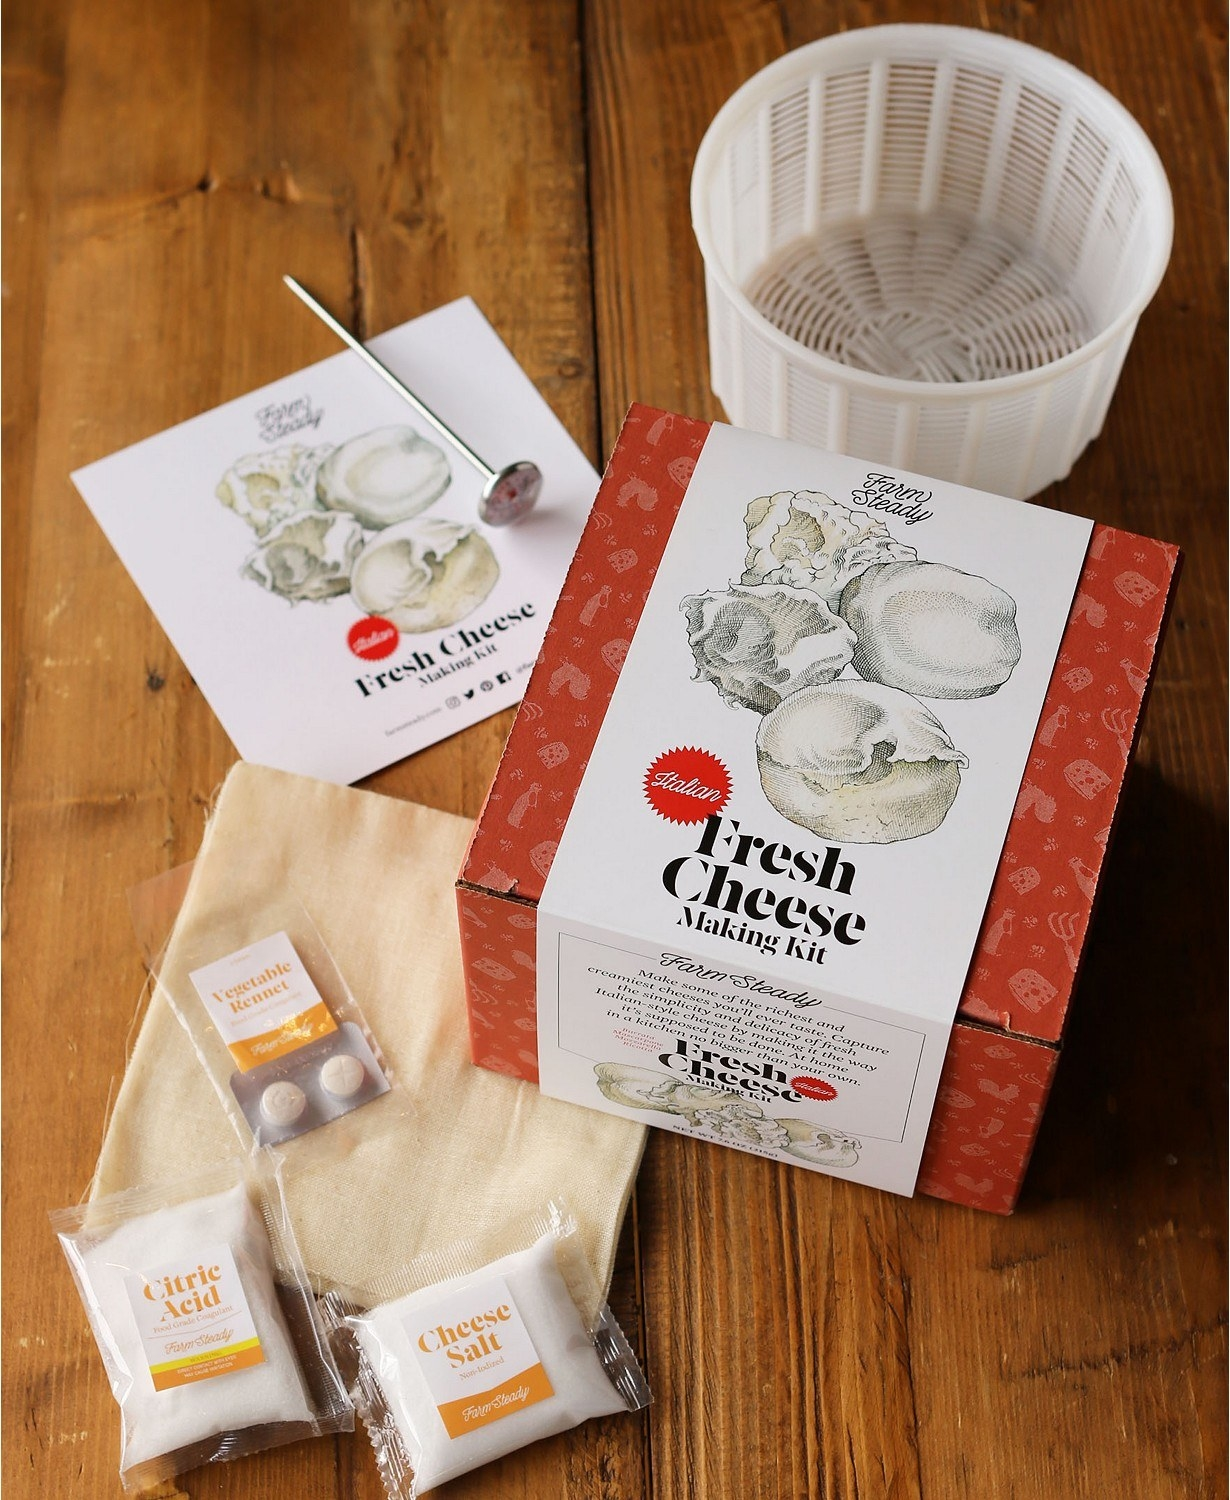 Packaging for all components of the cheese making kit